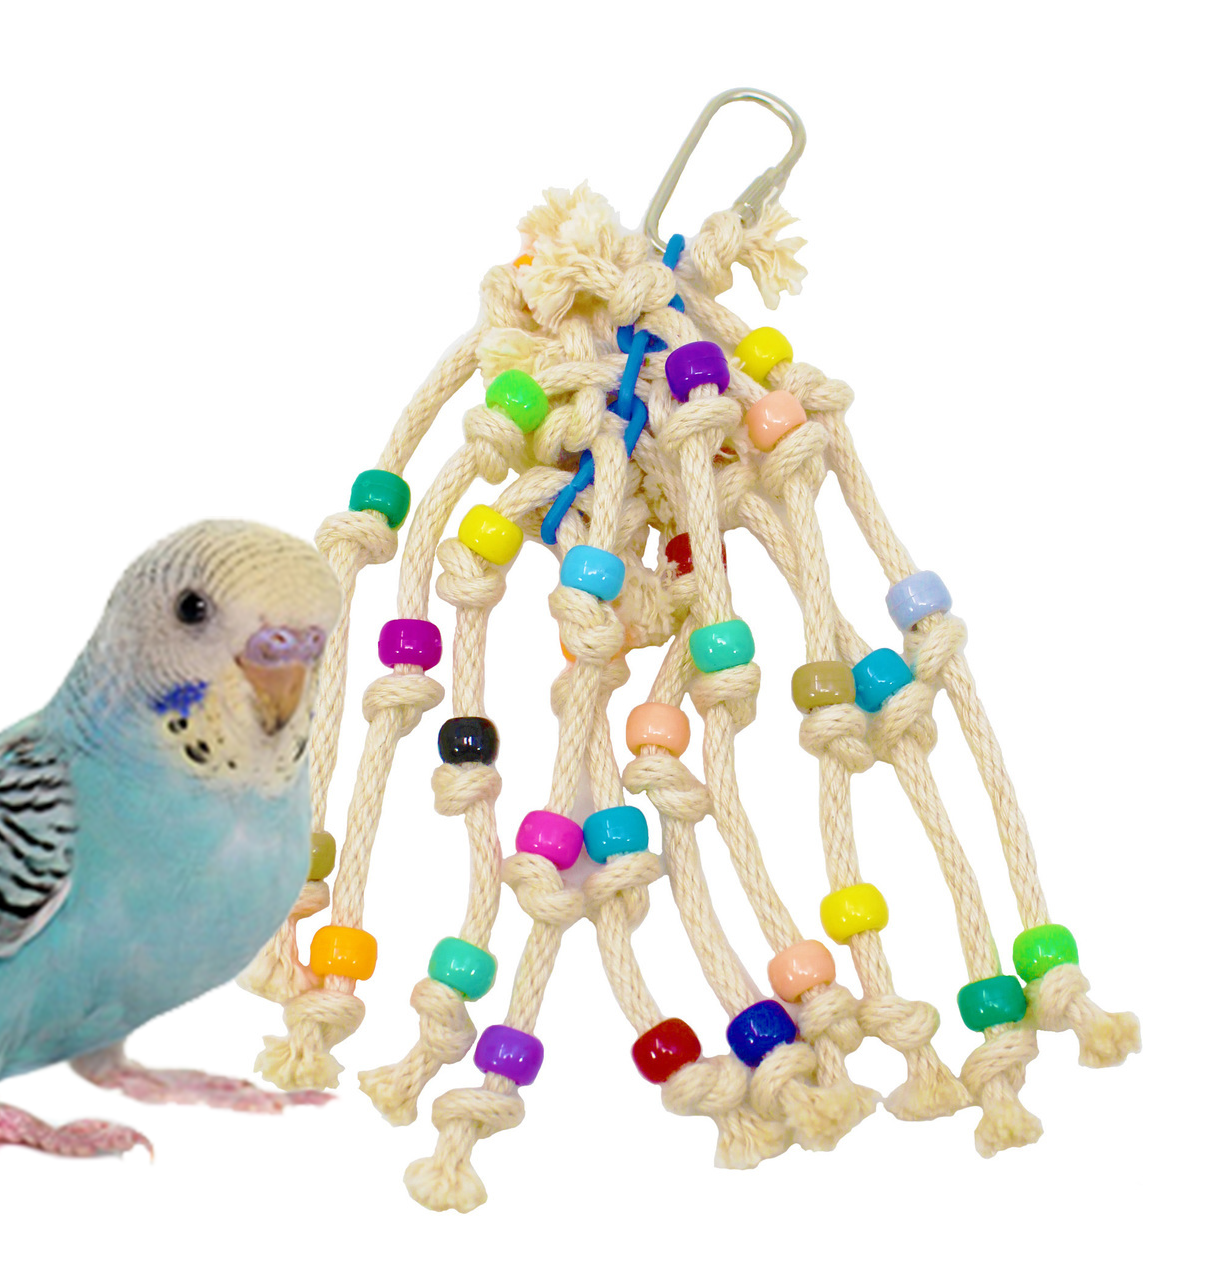 Bonka Bird Toys 1534 Stringy Wingy Bird Toy